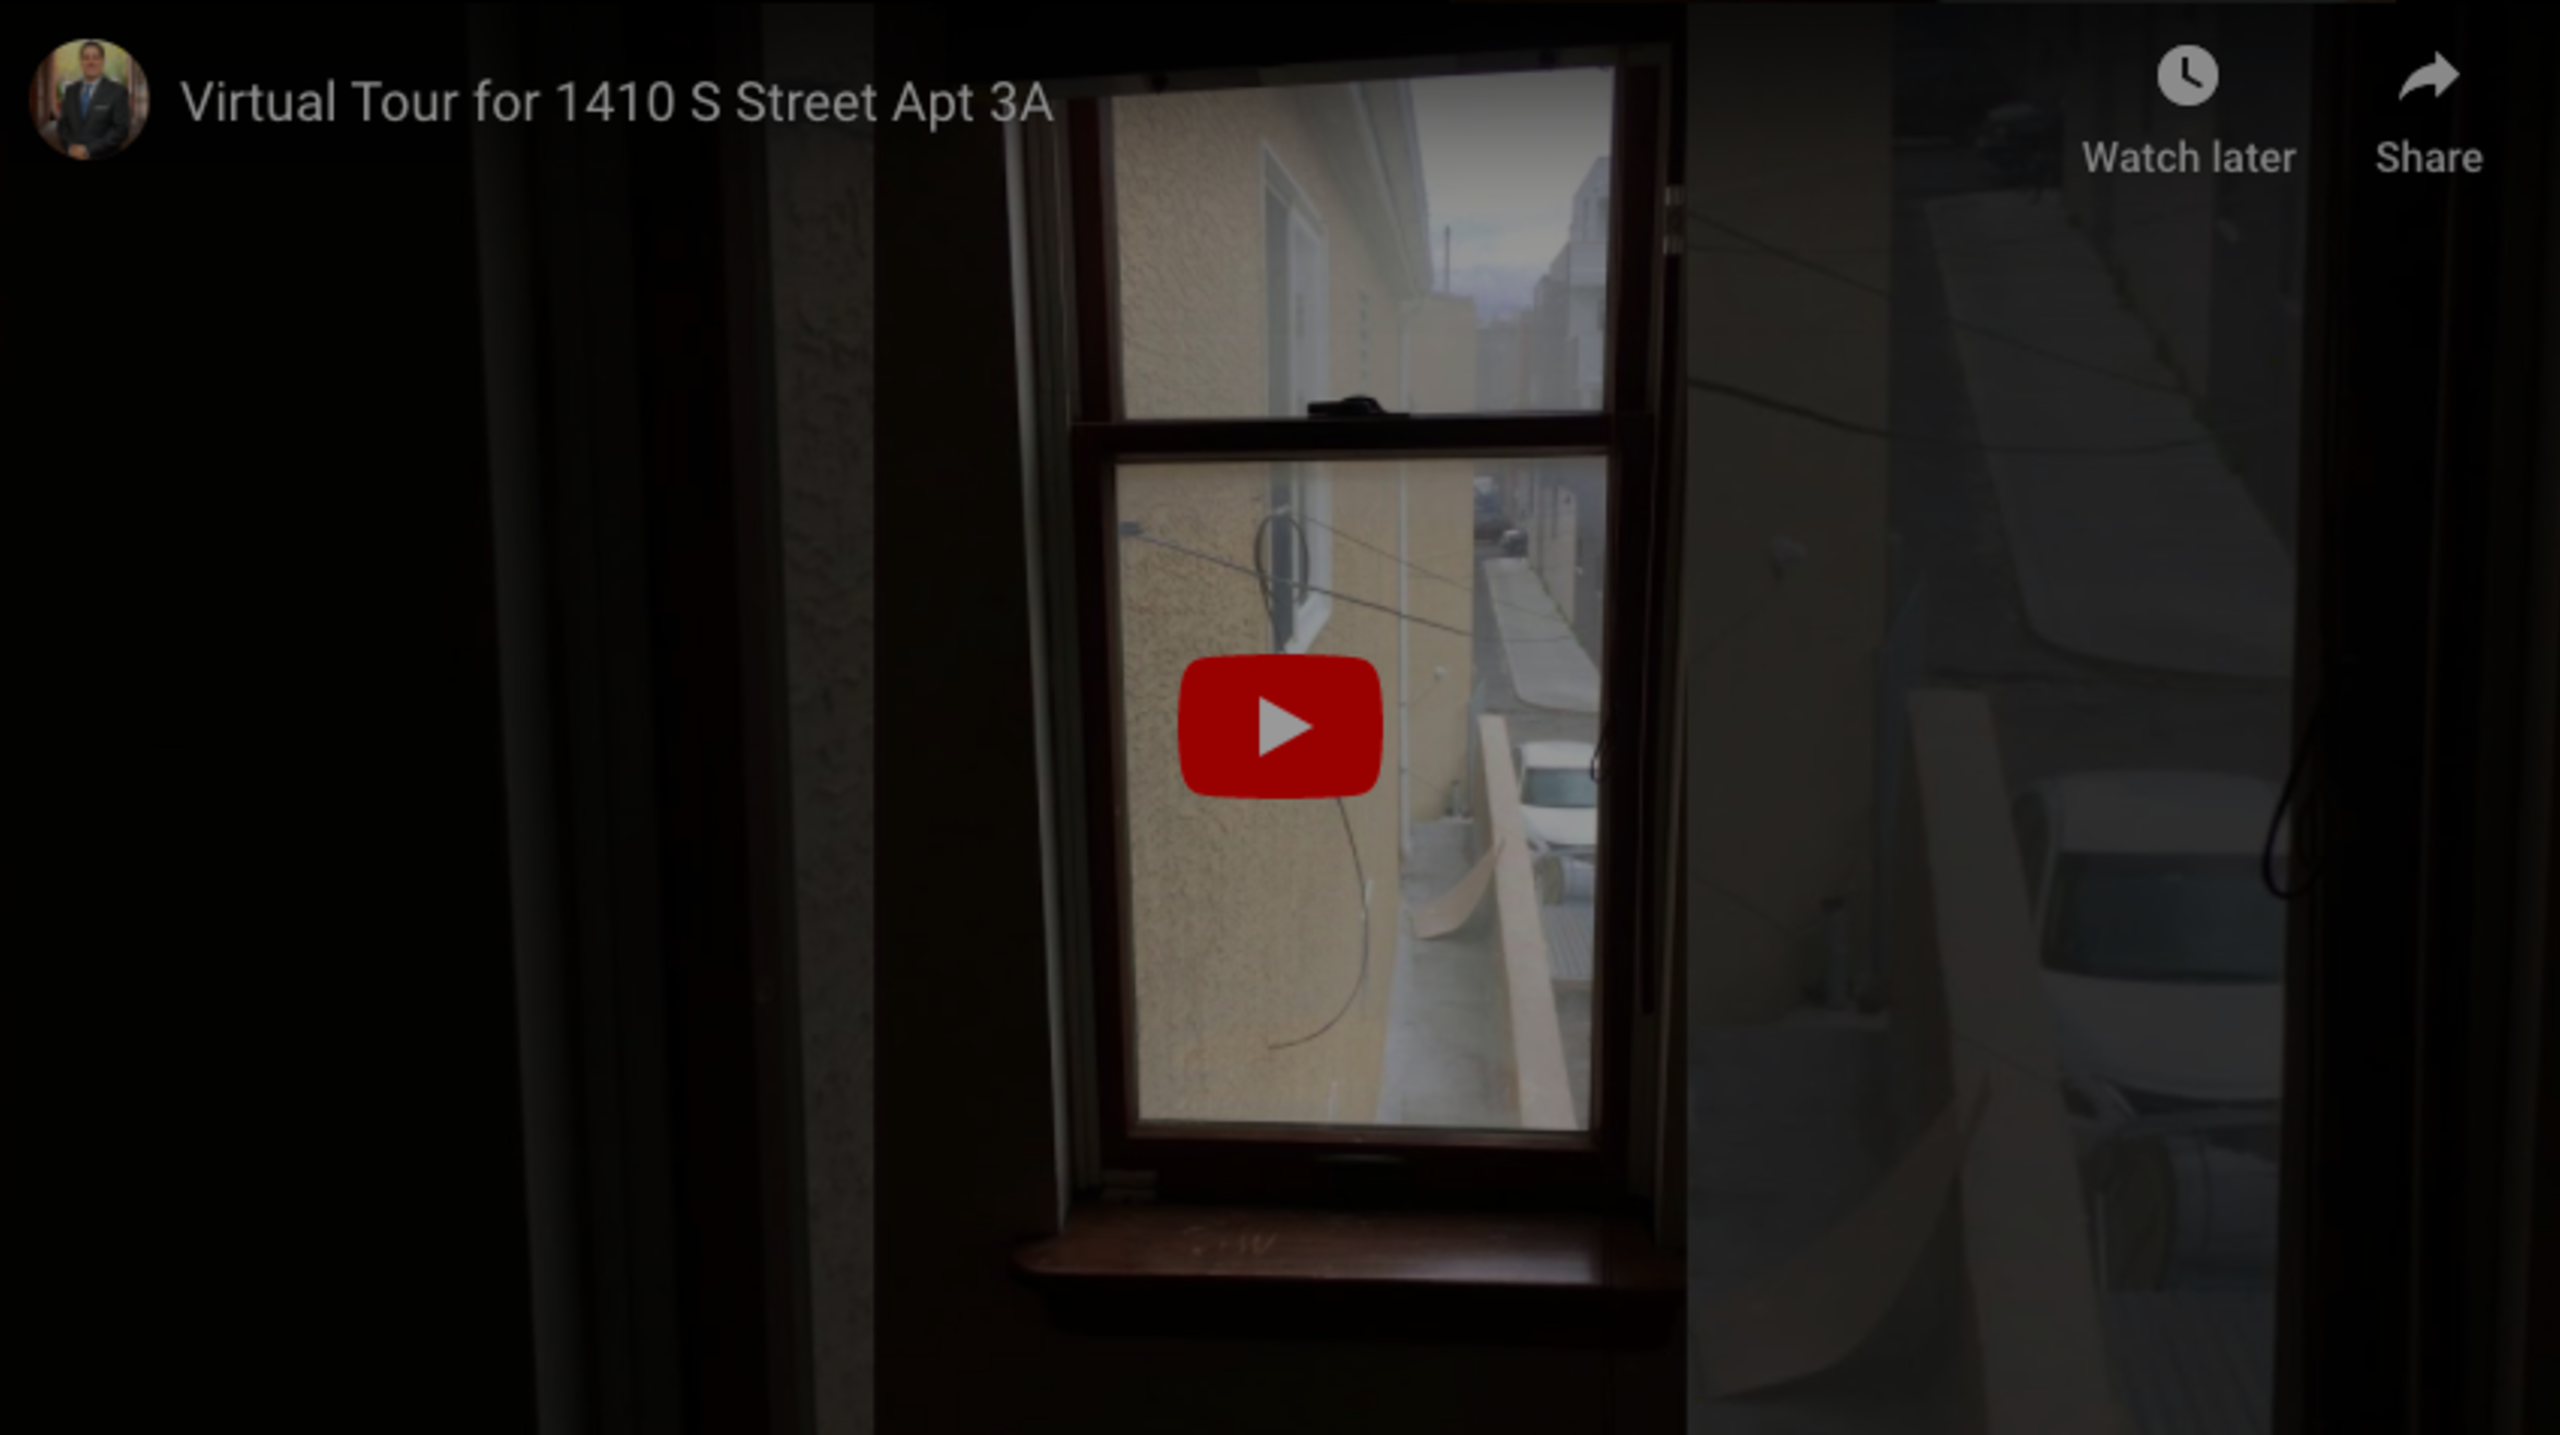 Virtual Tour for 1410 S Street Apt 3A